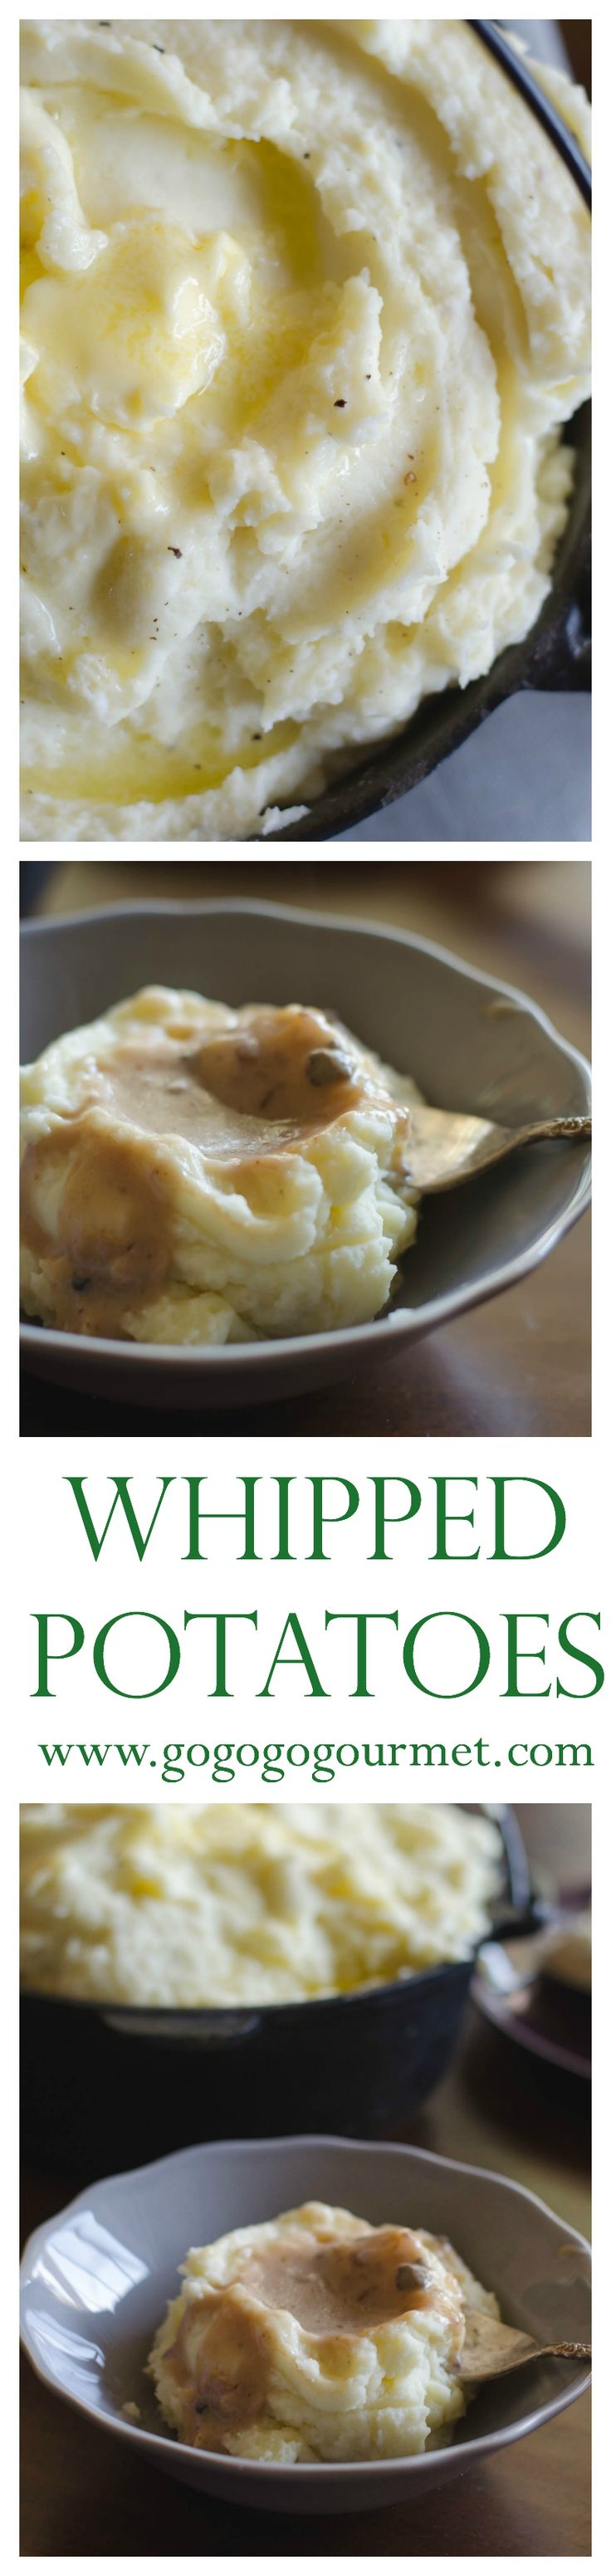 The SECRET INGREDIENT in my mashed potatoes is a home-run guarantee that you'll end up with the creamiest potatoes ever! Whipped Potatoes | Go Go Go Gourmet @gogogogourmet